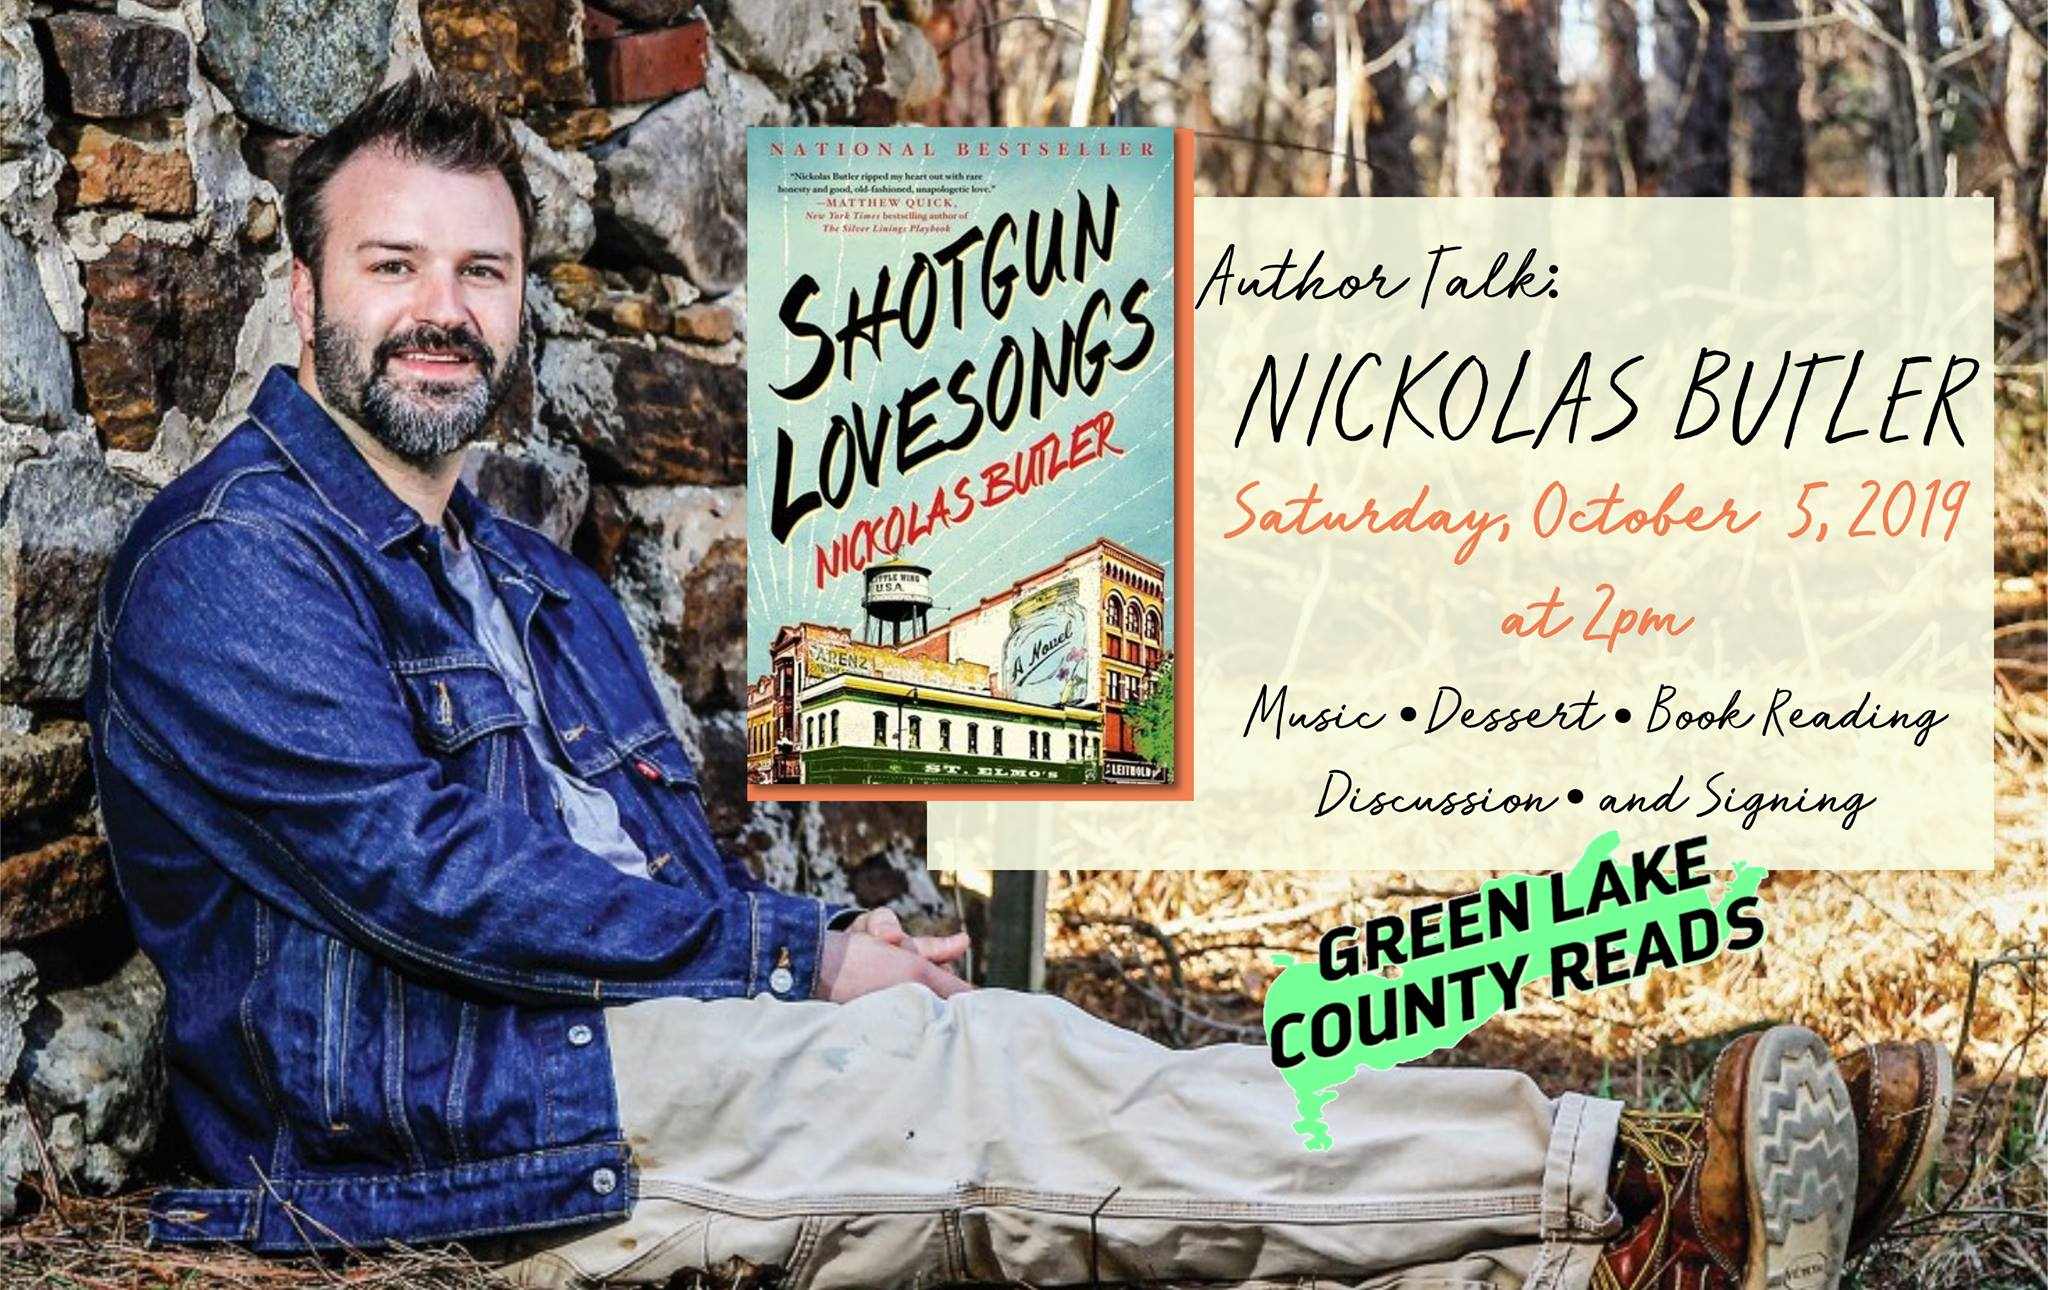 Author Talk: Nicholas Butler, Shotgun Lovesongs. Saturday, October 5 at 2 pm at Berlin High School Auditorium. Book reading, discussion, signing, dessert. Green Lake County Reads